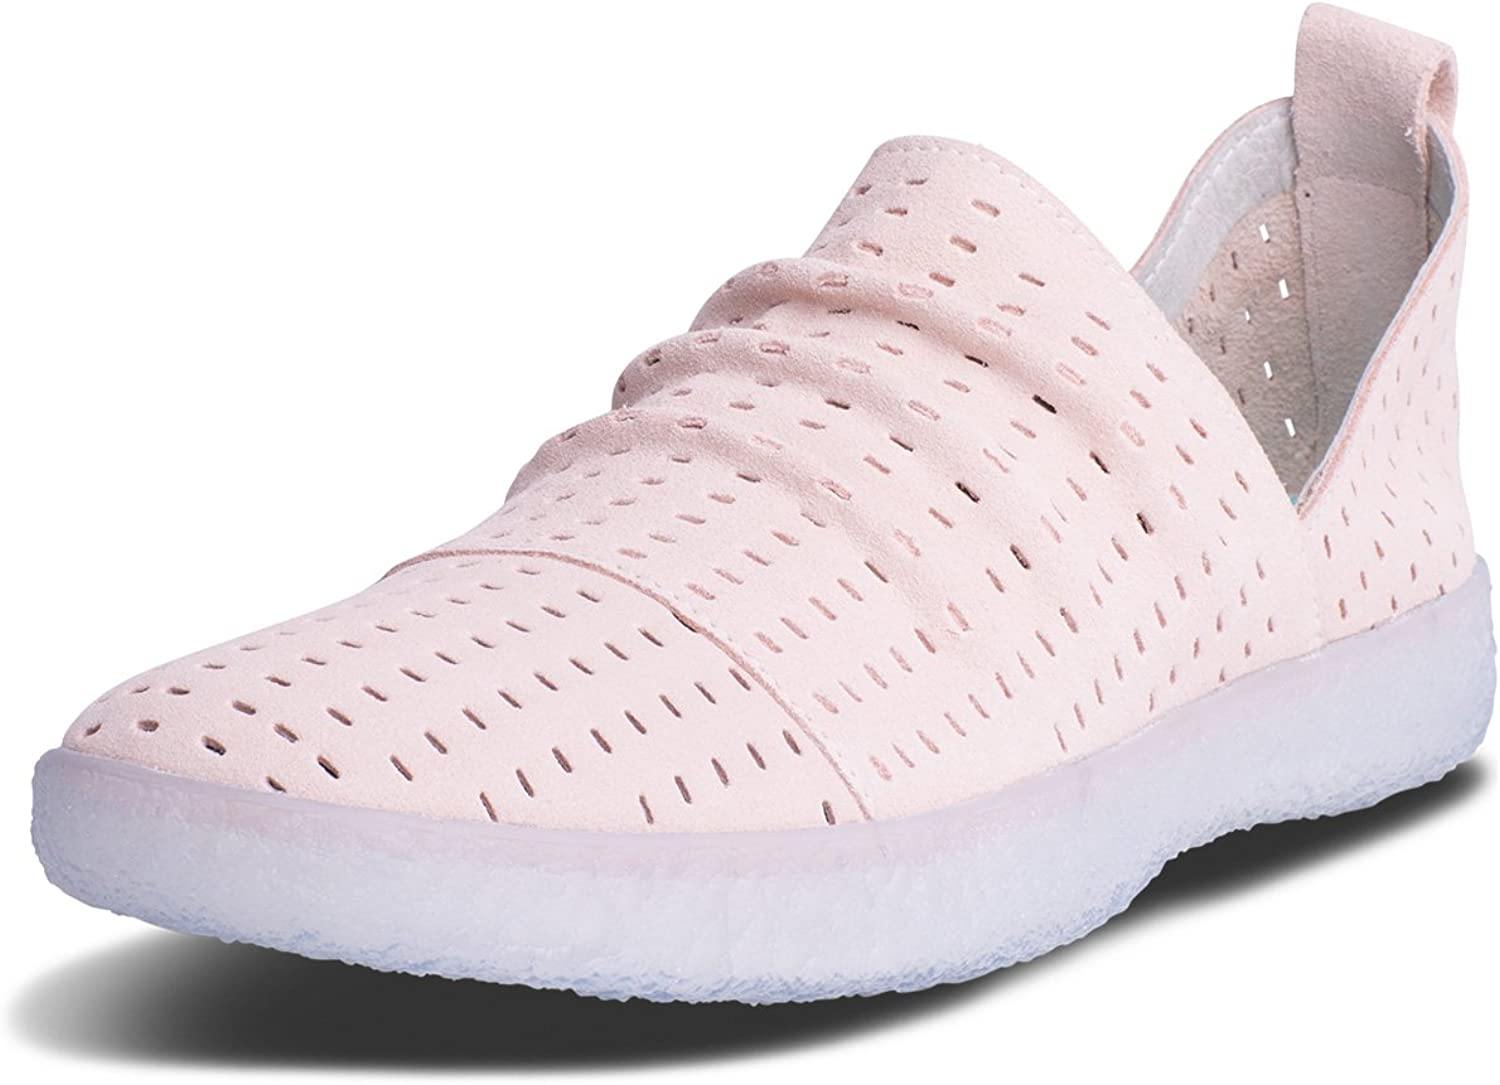 bluePrint Stinson Slip-On Womens Cool and Casual shoes Cloud Imprint Comfort Technology-Pink